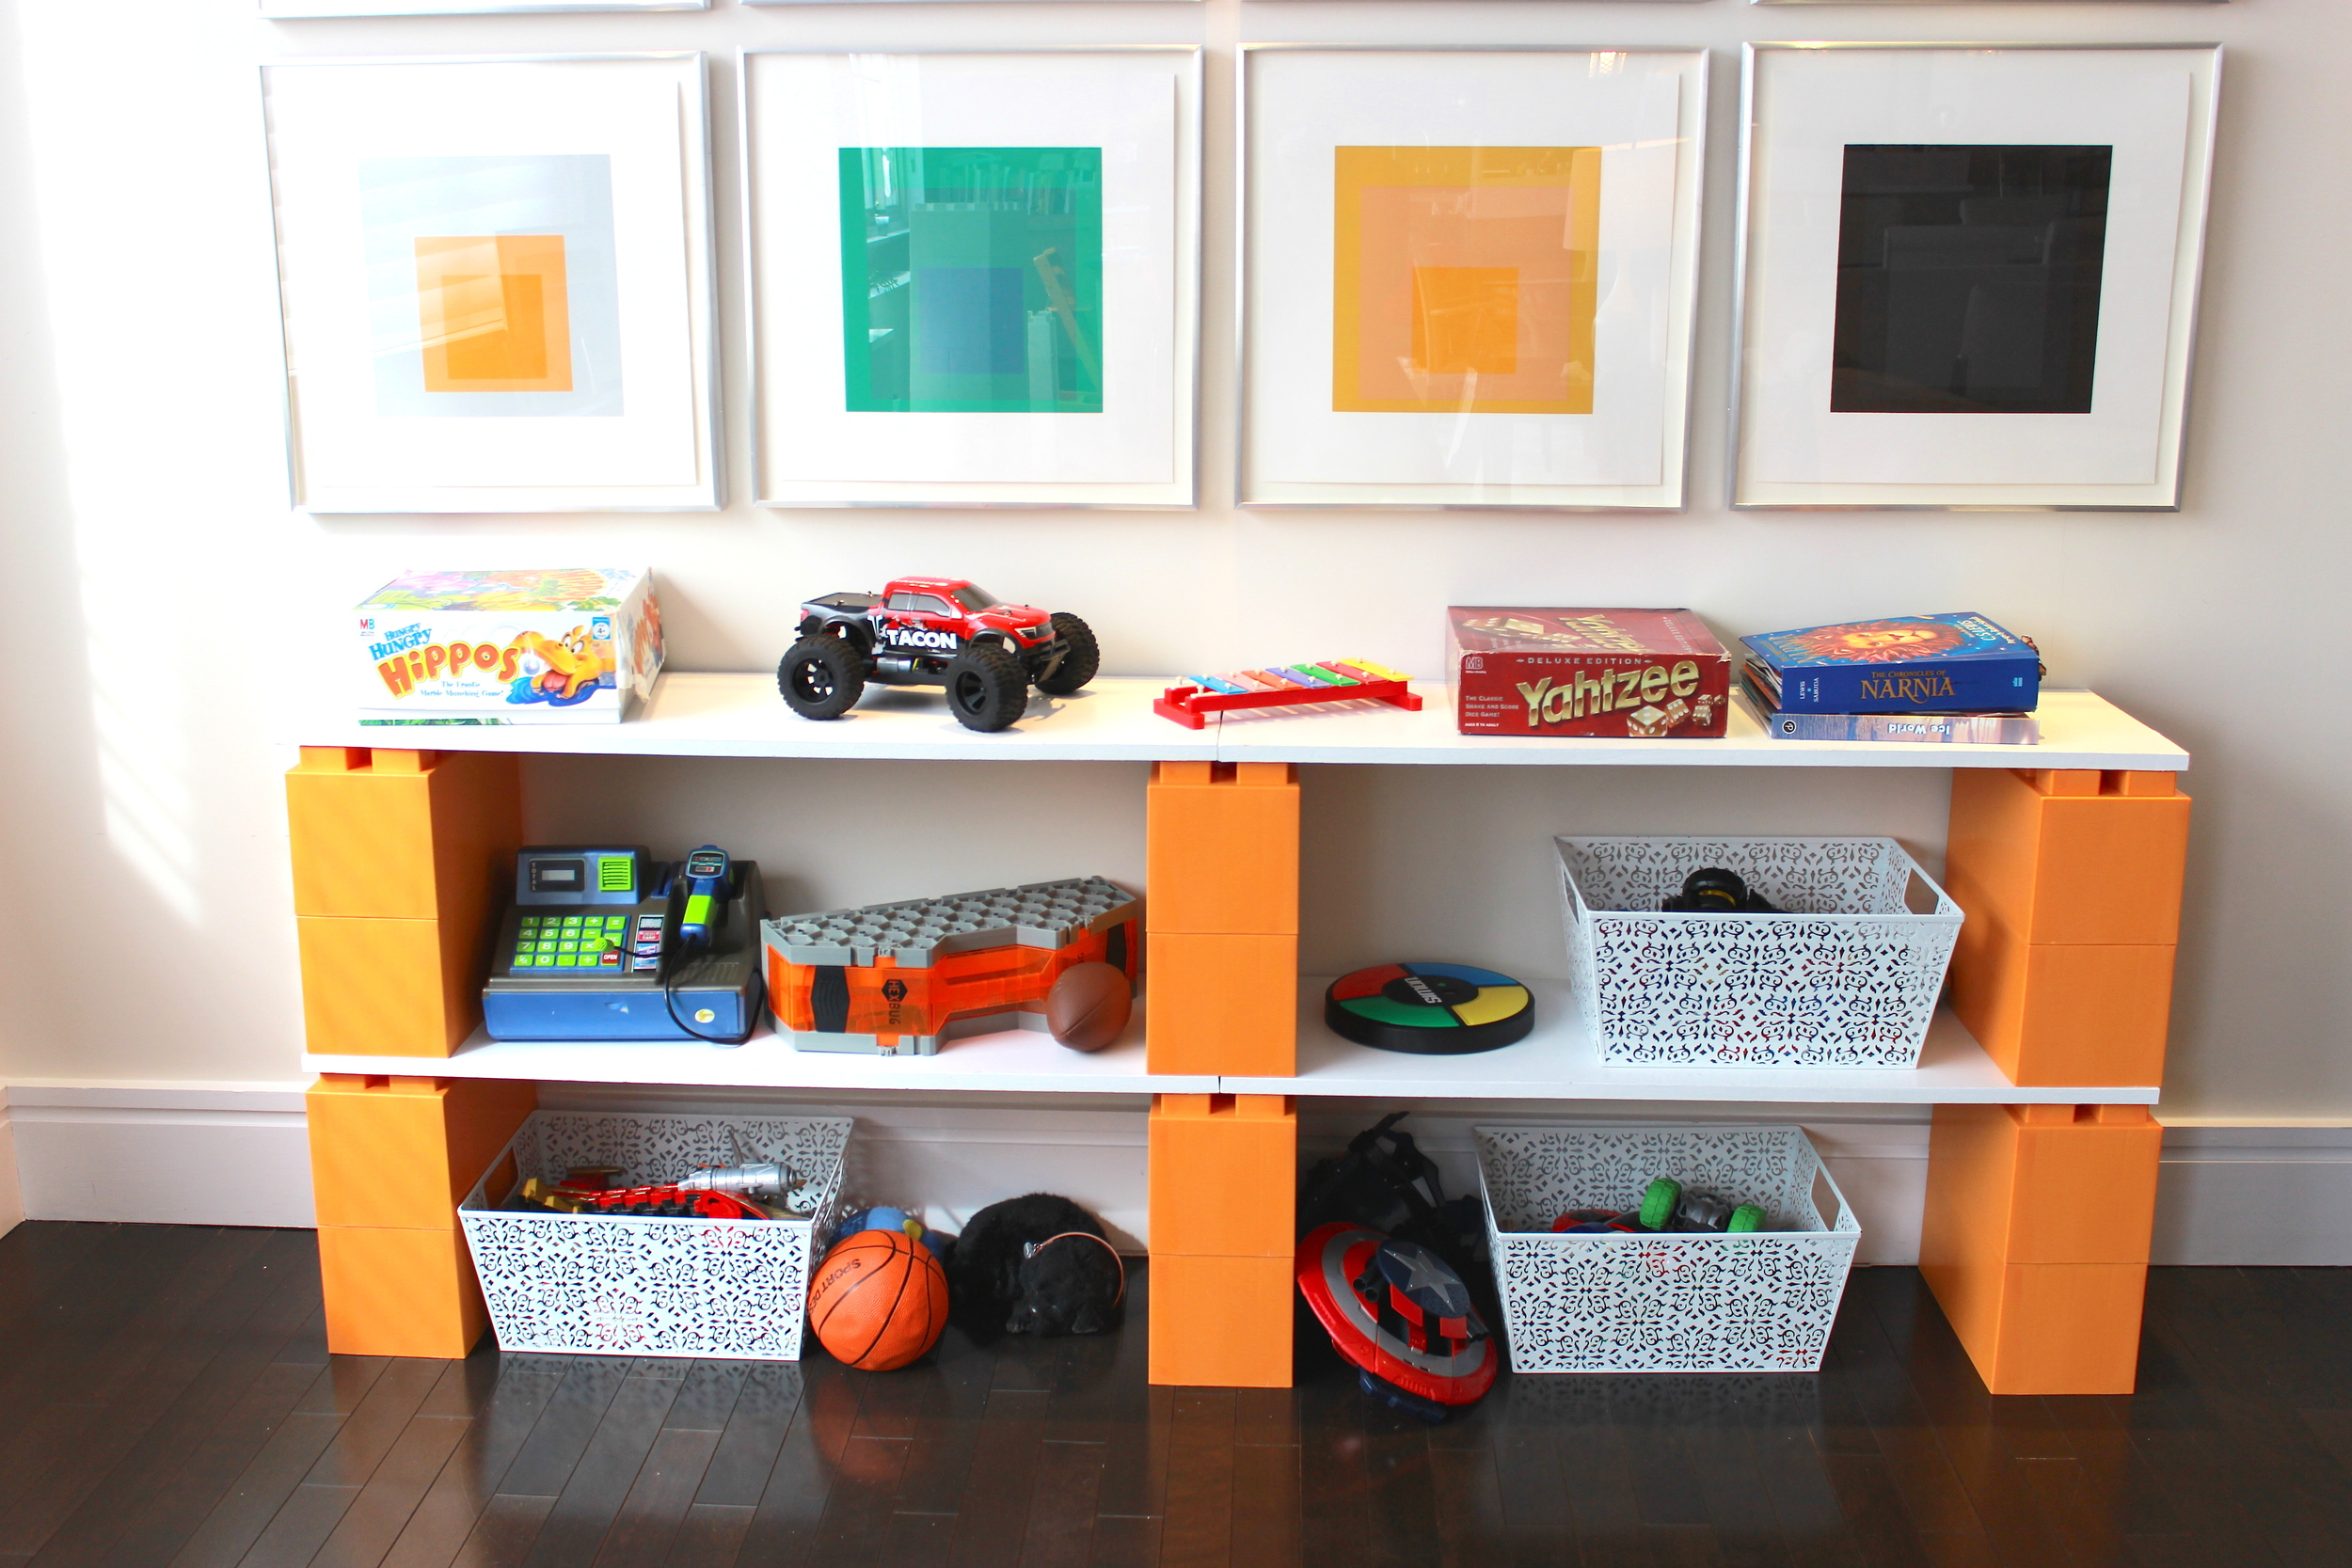 Modern interlocking block furniture  Modular furniture construction     Ideal for toy storage and kids rooms shelving